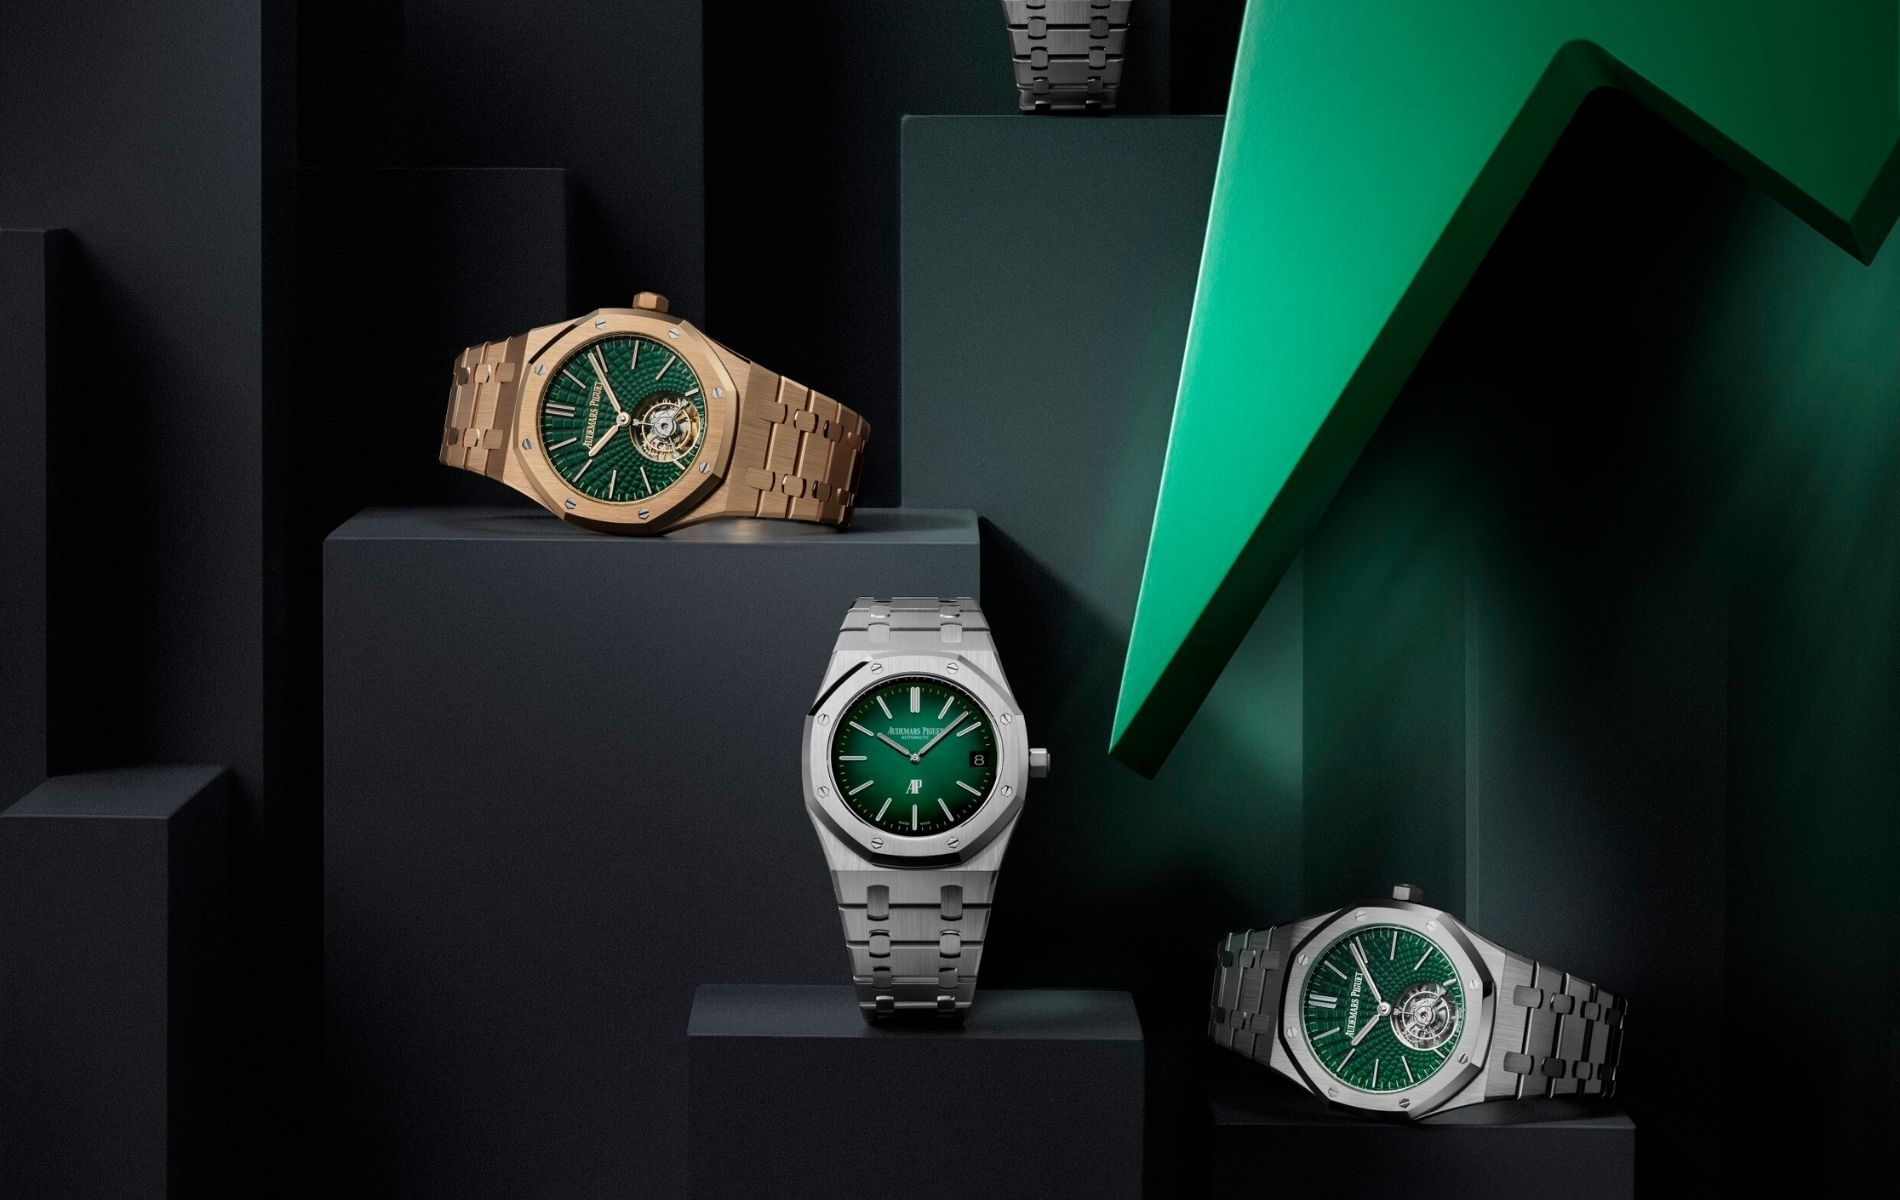 The new Royal Oak watches with green dials